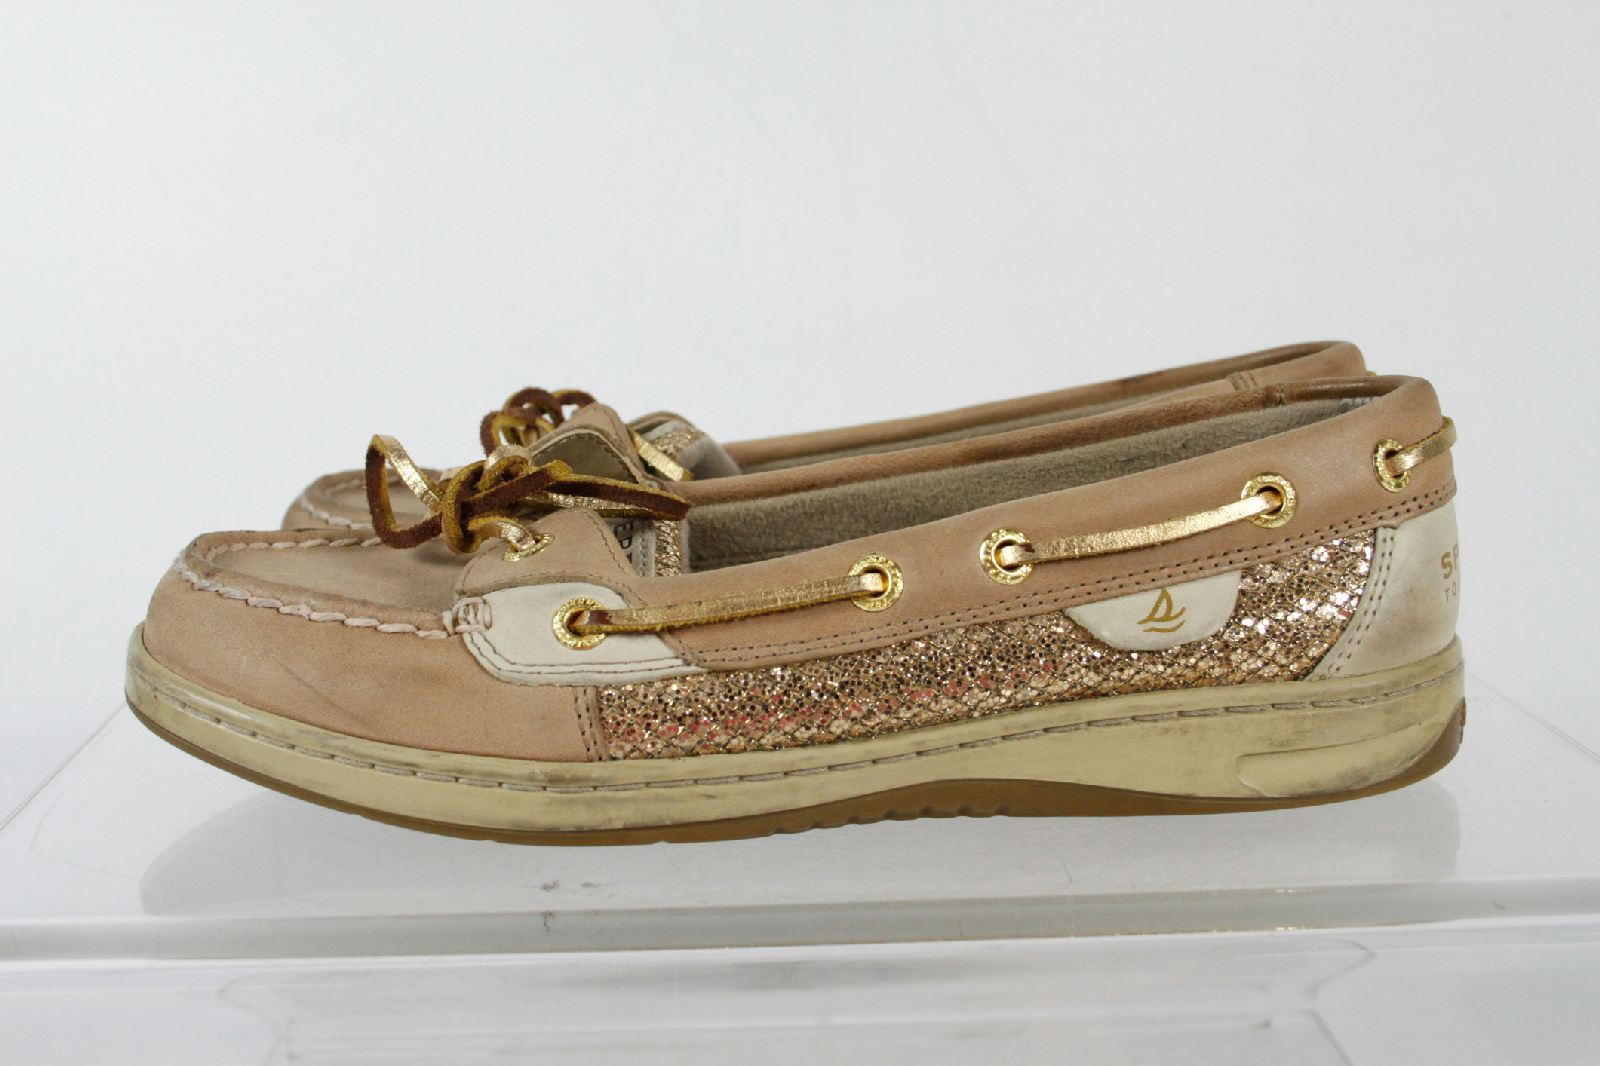 sperry top sider beige leather lace textured moccasin